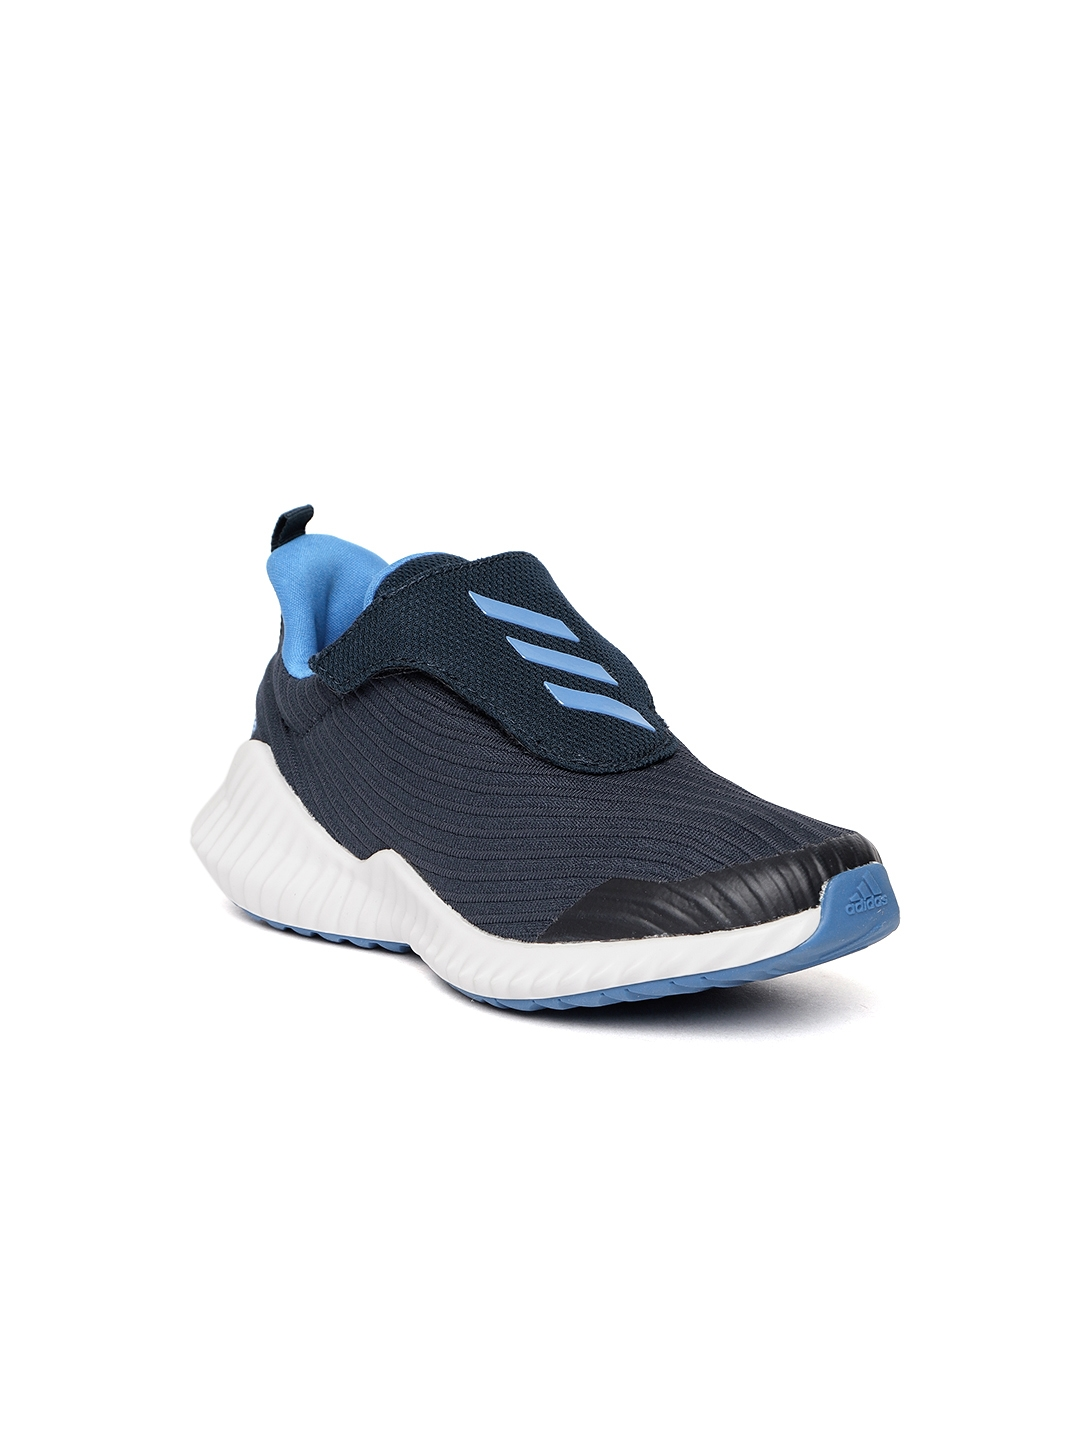 c58529ad701 Buy Adidas Kids Navy Blue Fortarun AC Running Shoes - Sports Shoes ...